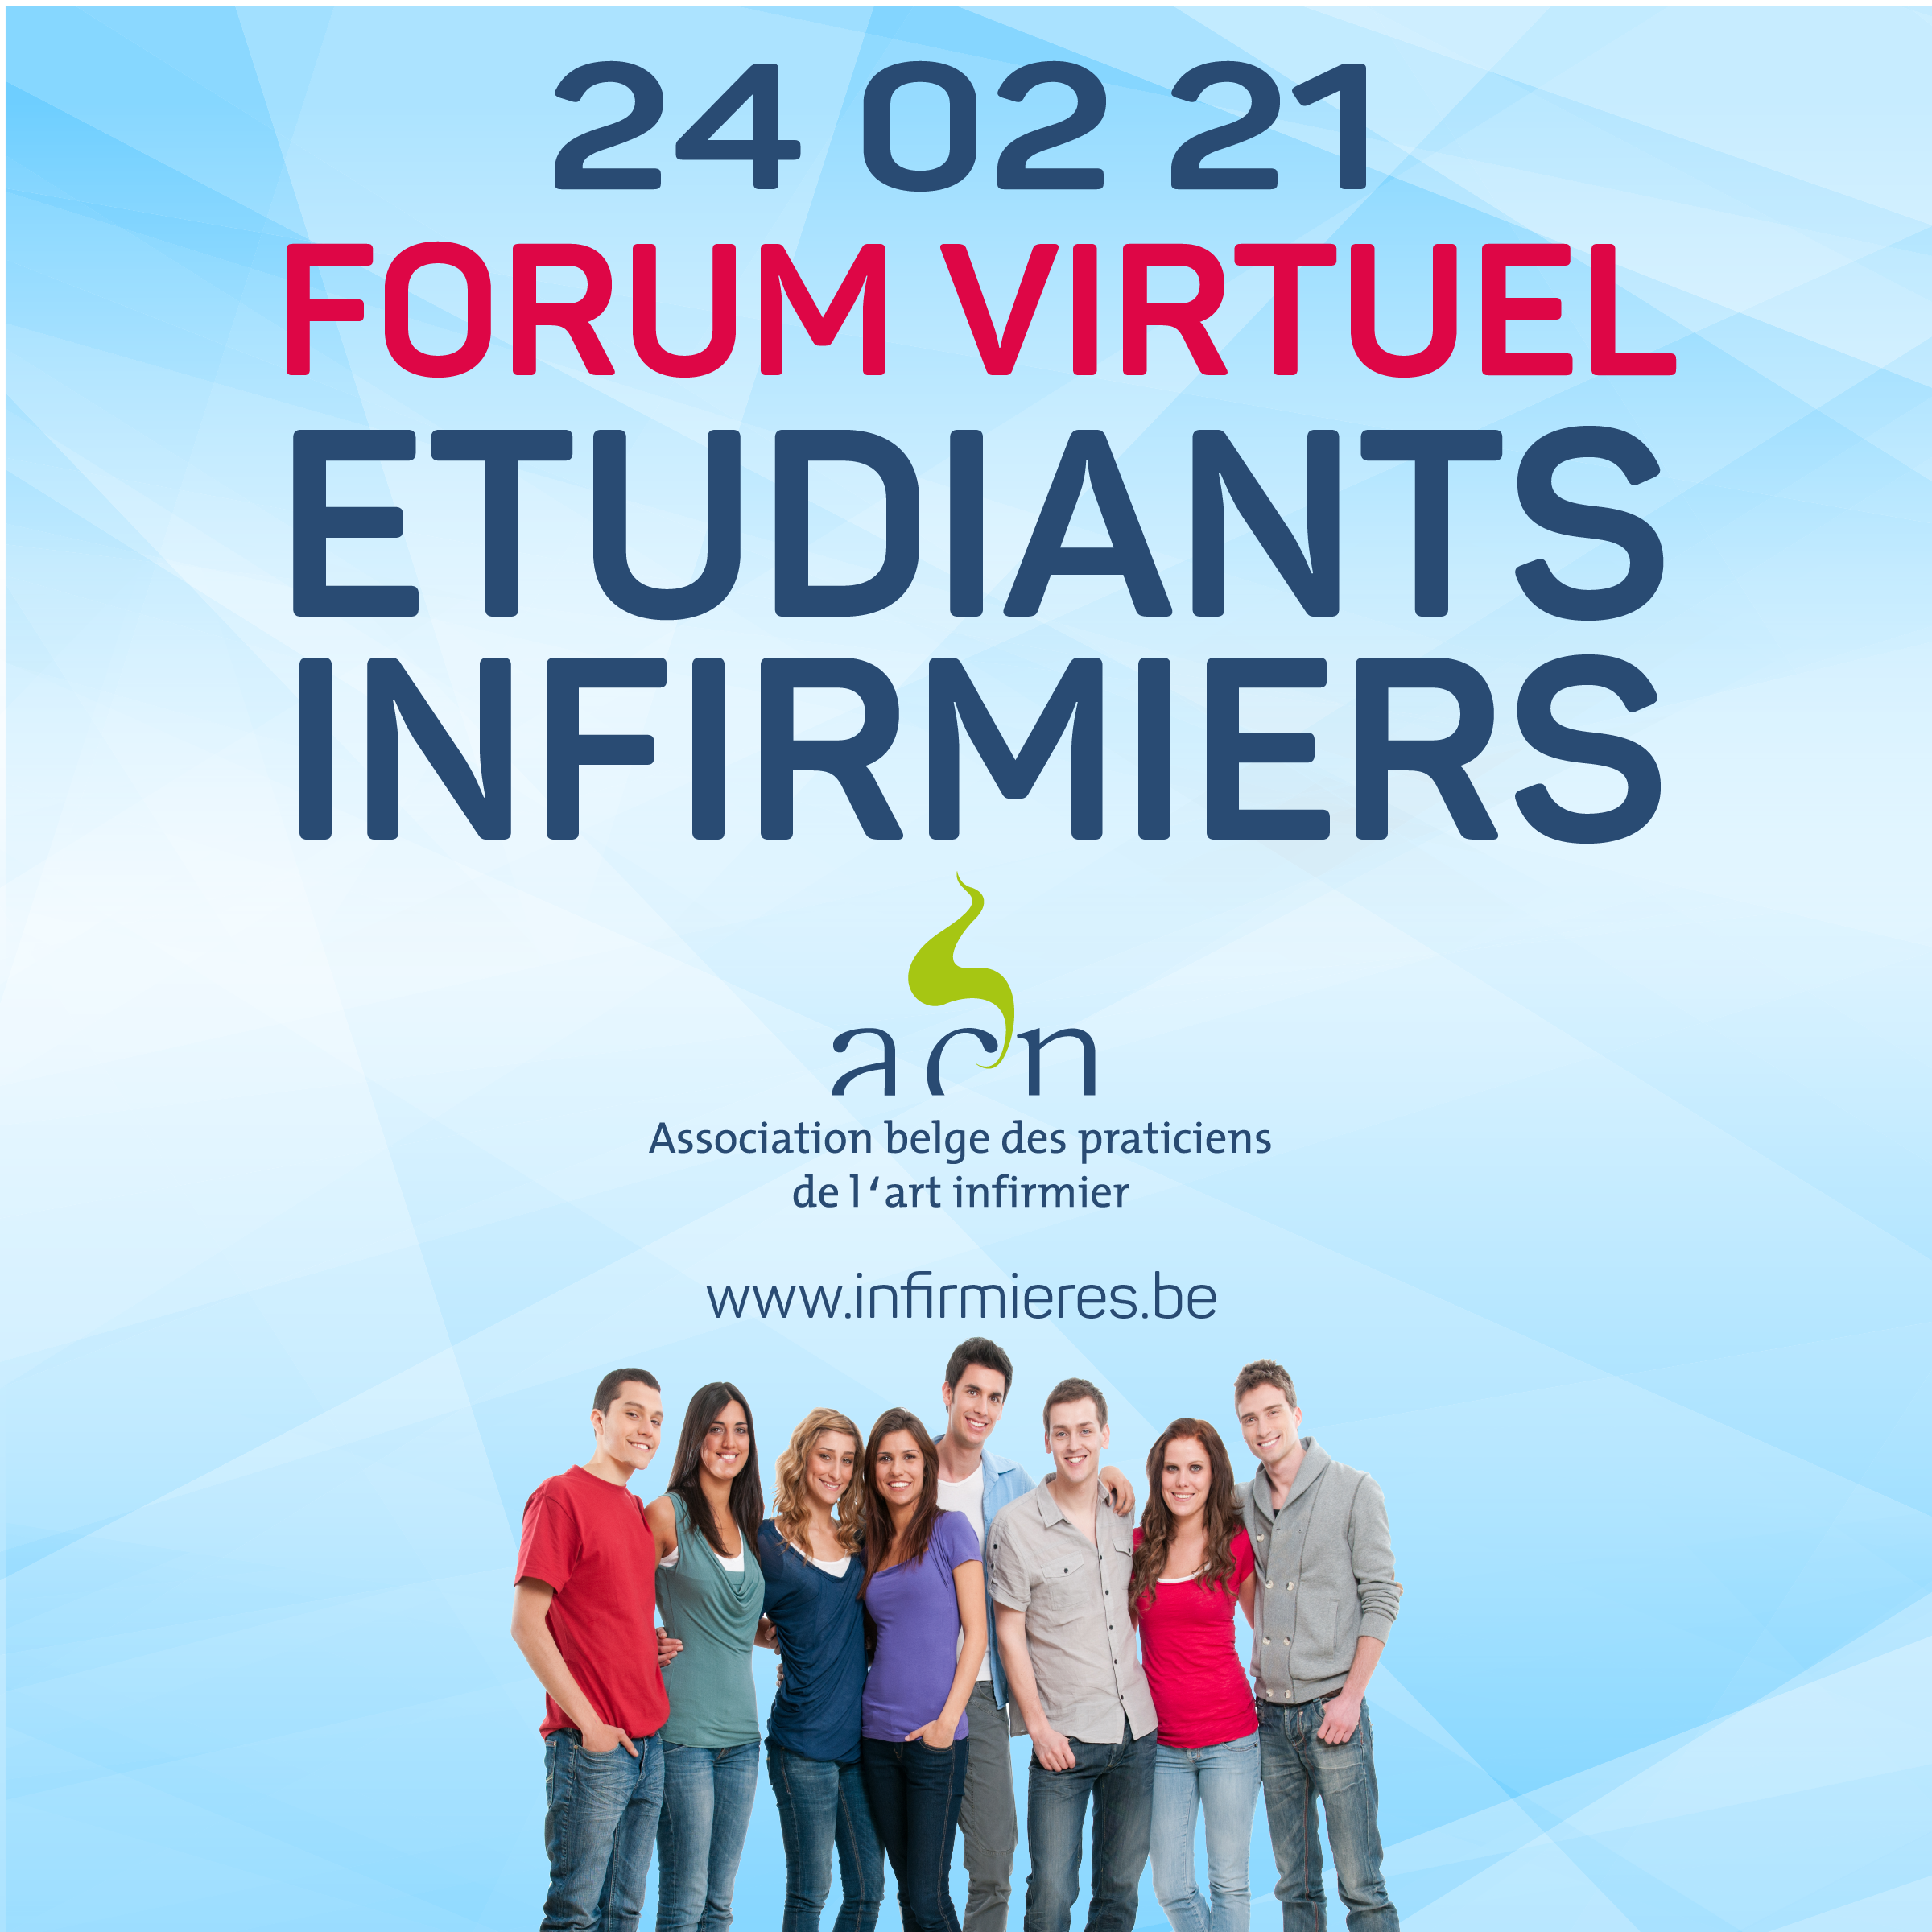 FORUM ETUDIANTS INFIRMIERS en virtuel 24 02 2021